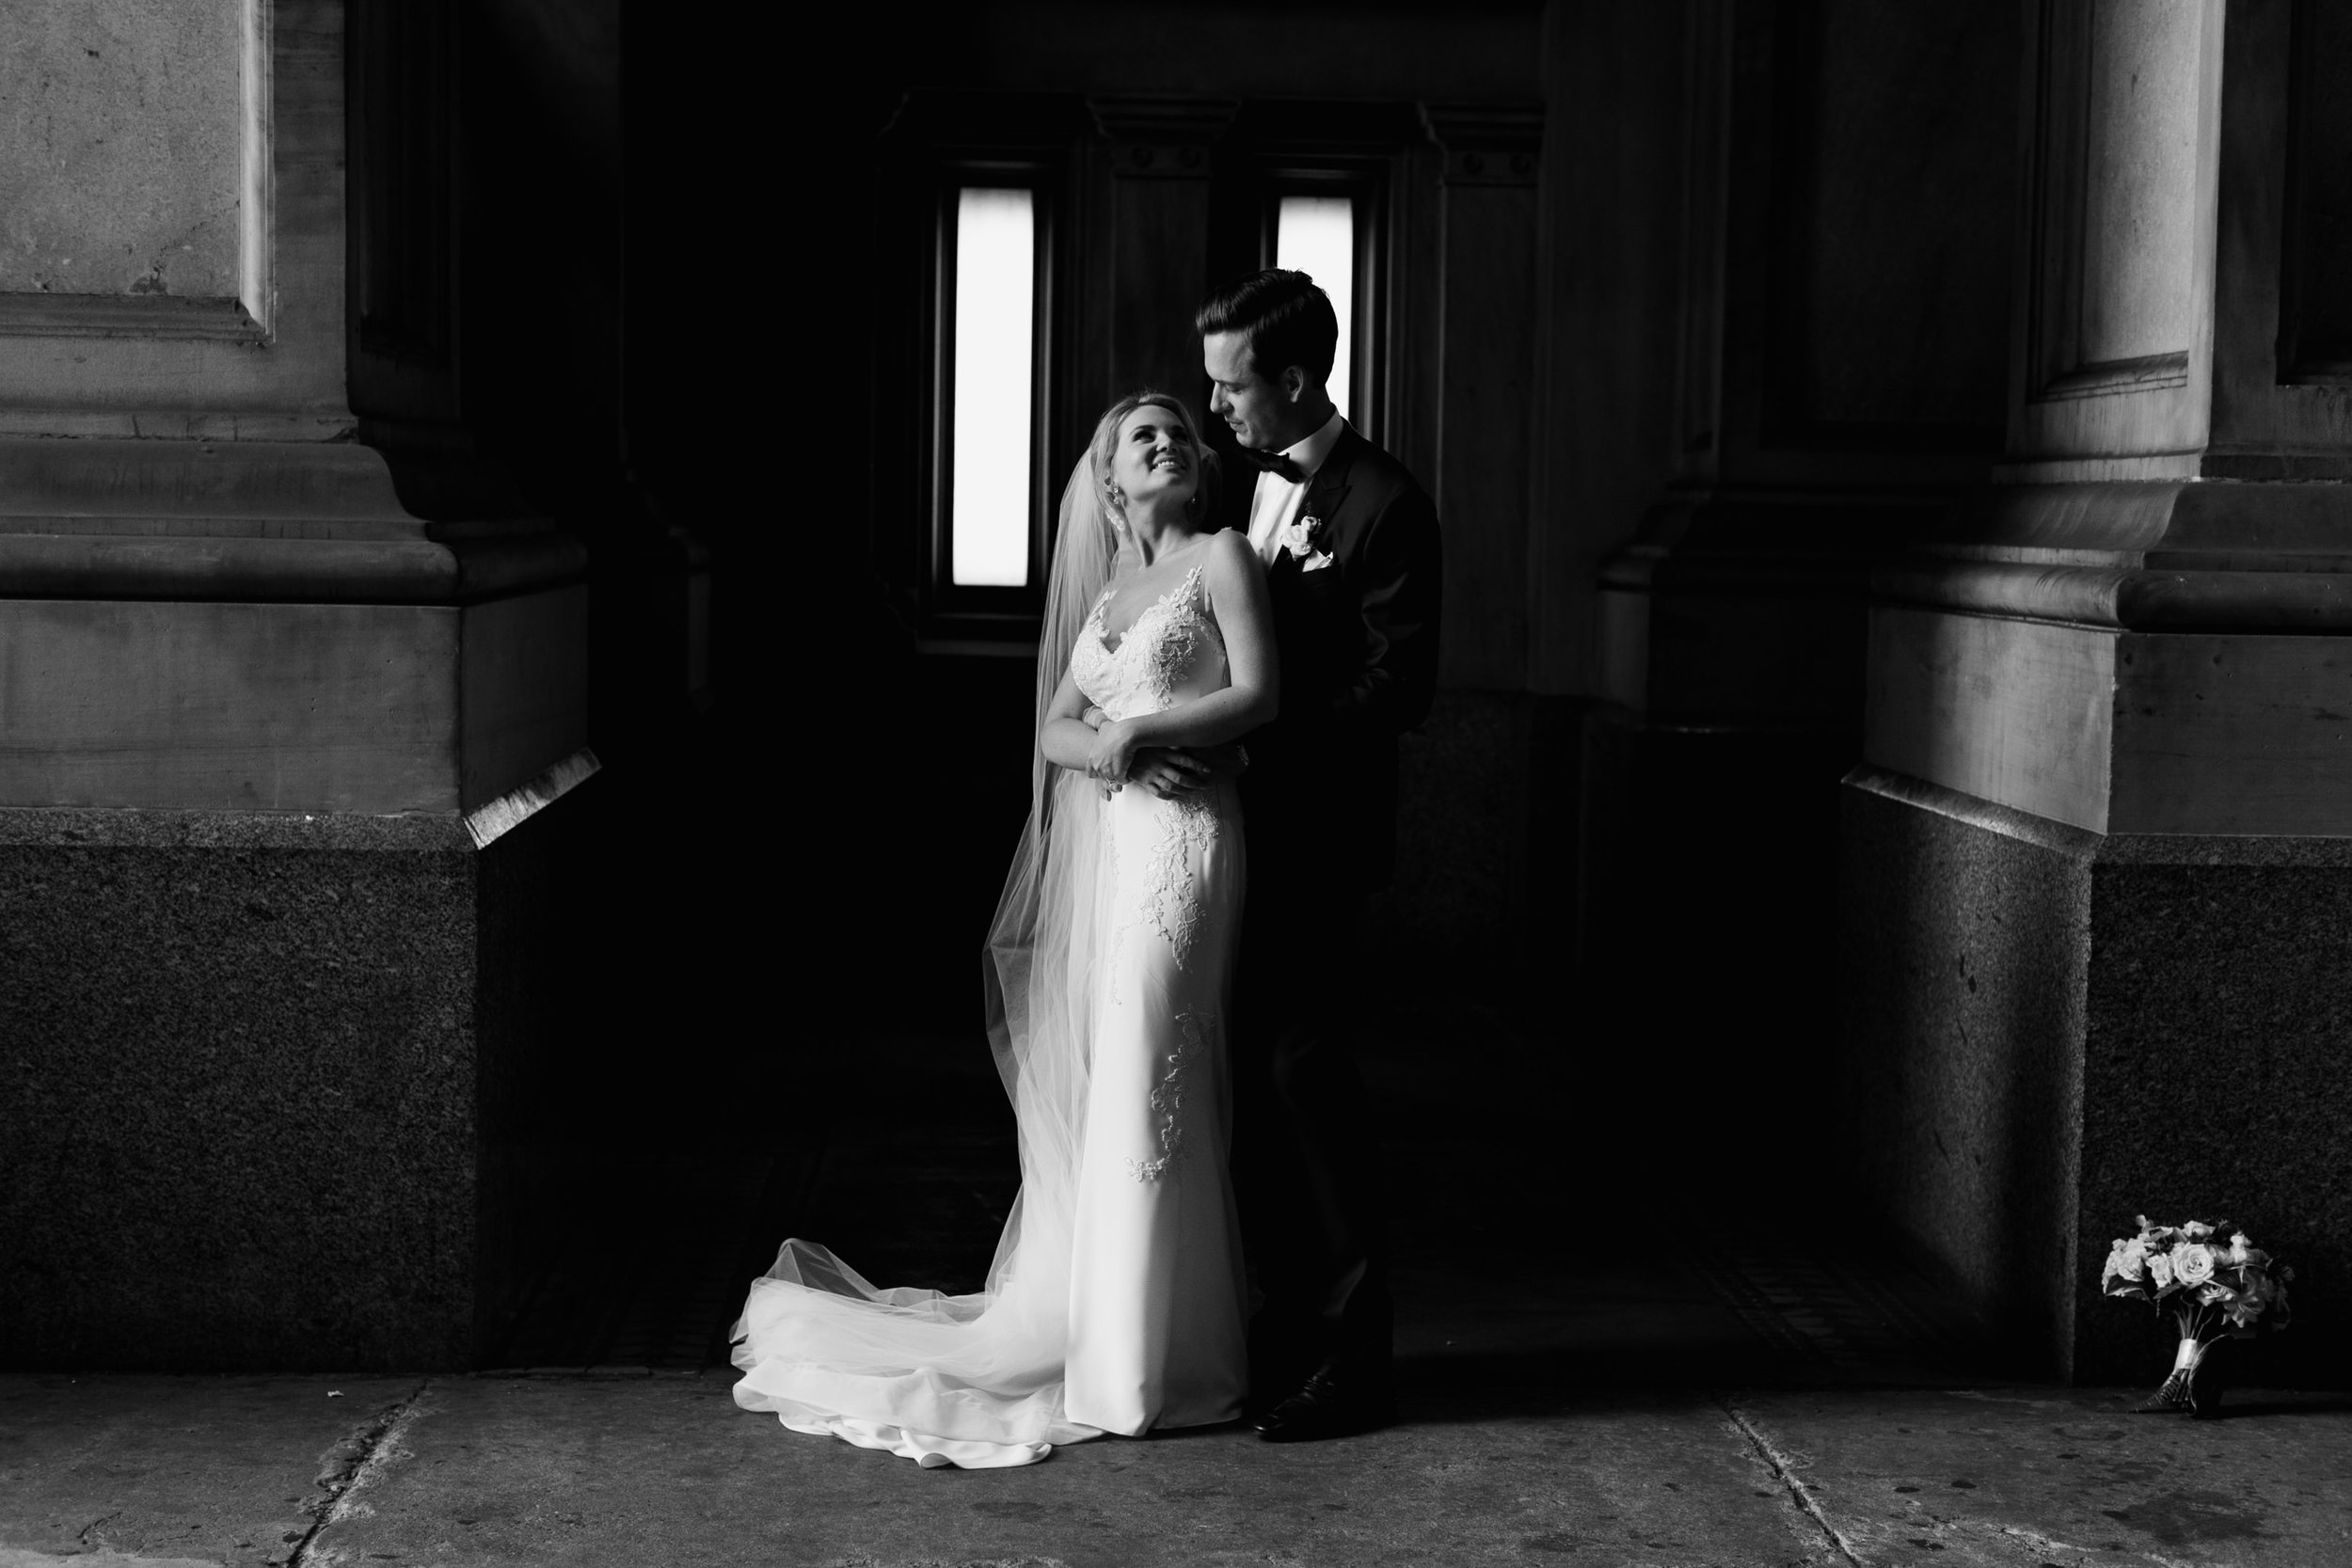 photography-wedding-weddings-natural-candid-union league-philadelphia-black tie-city hall-broad street-editorial-modern-fine-art-29.JPG